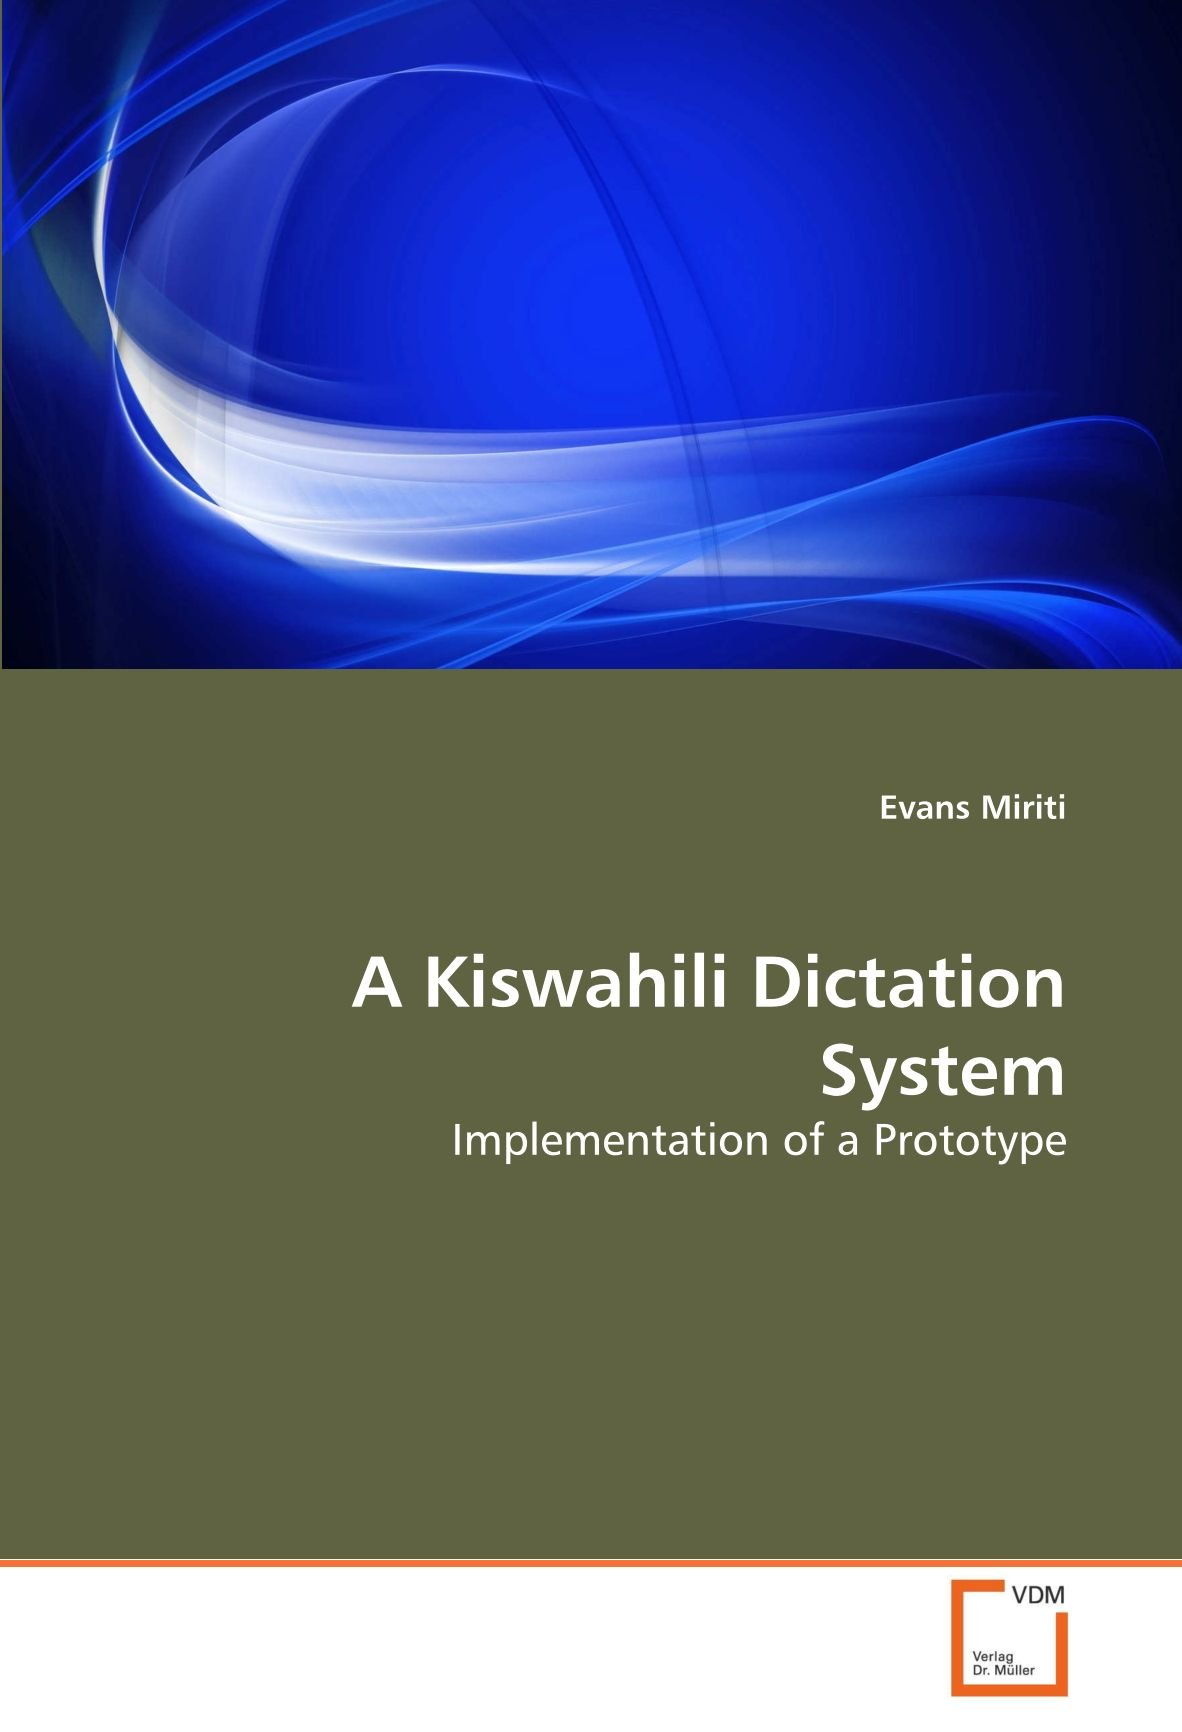 A Kiswahili Dictation System: Implementation of a Prototype pdf